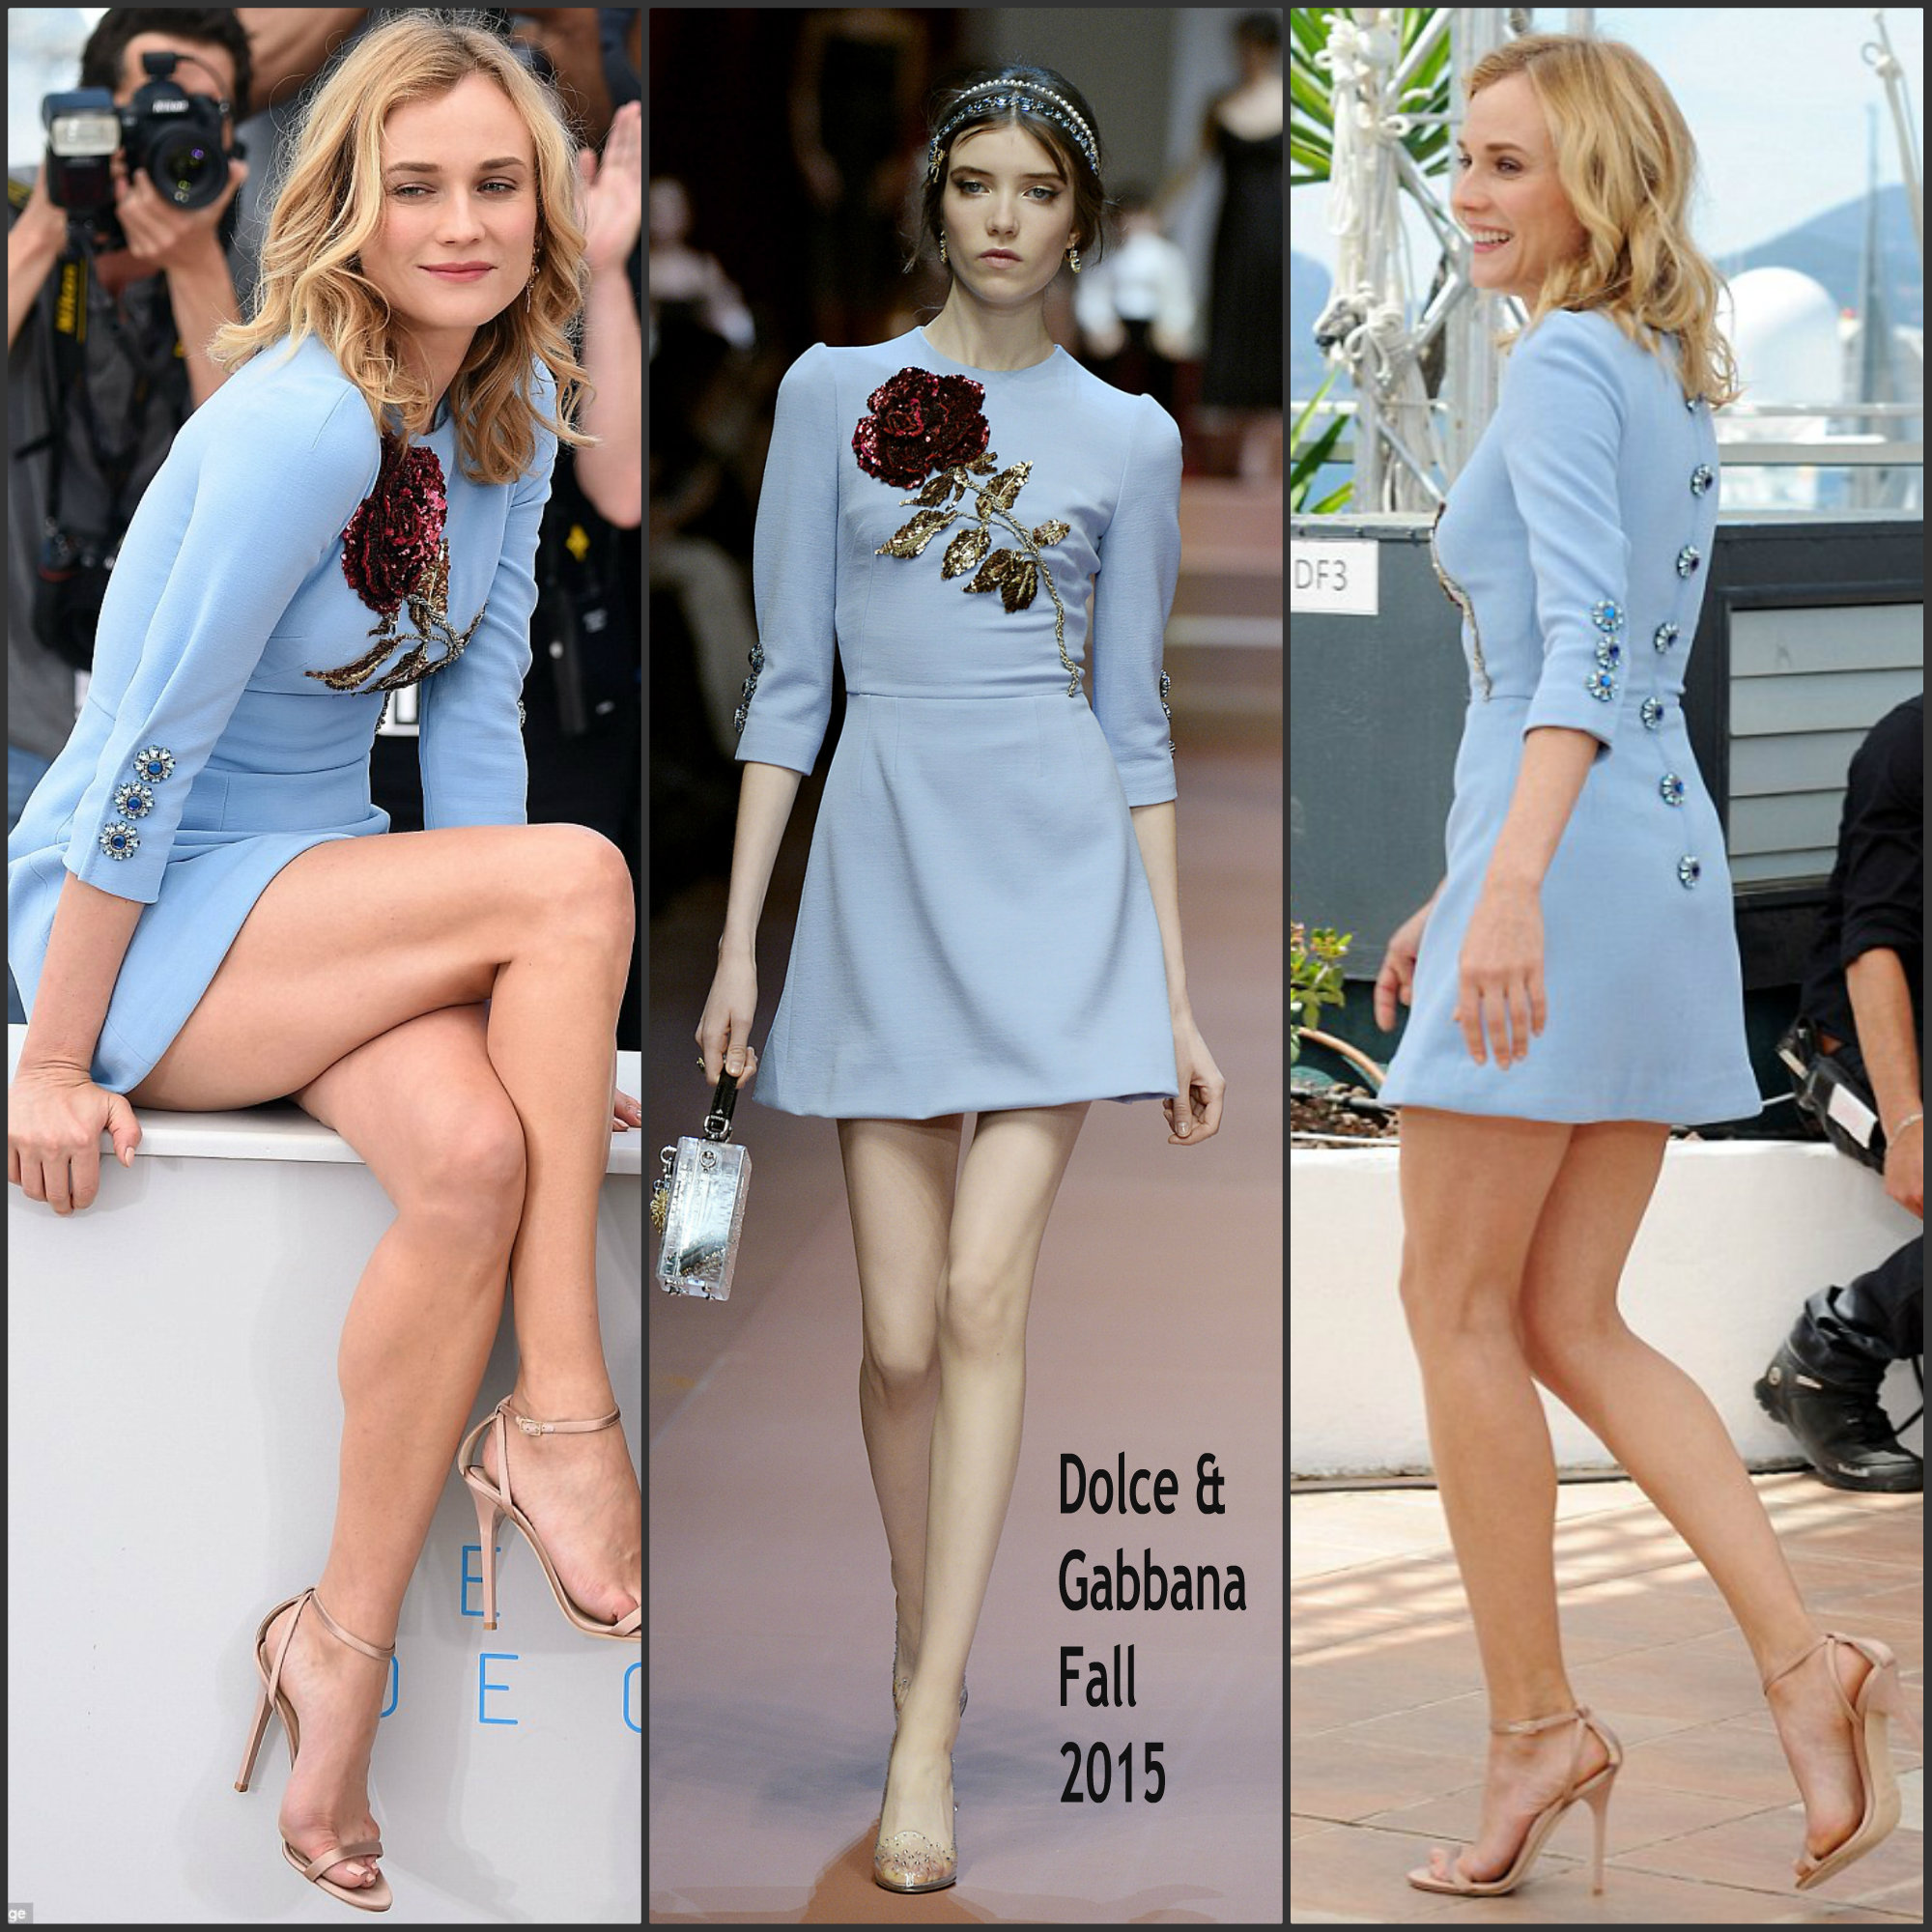 diane-kruger-in-dolce-and-gabbana-disorder-cannes-film-festival-photocall